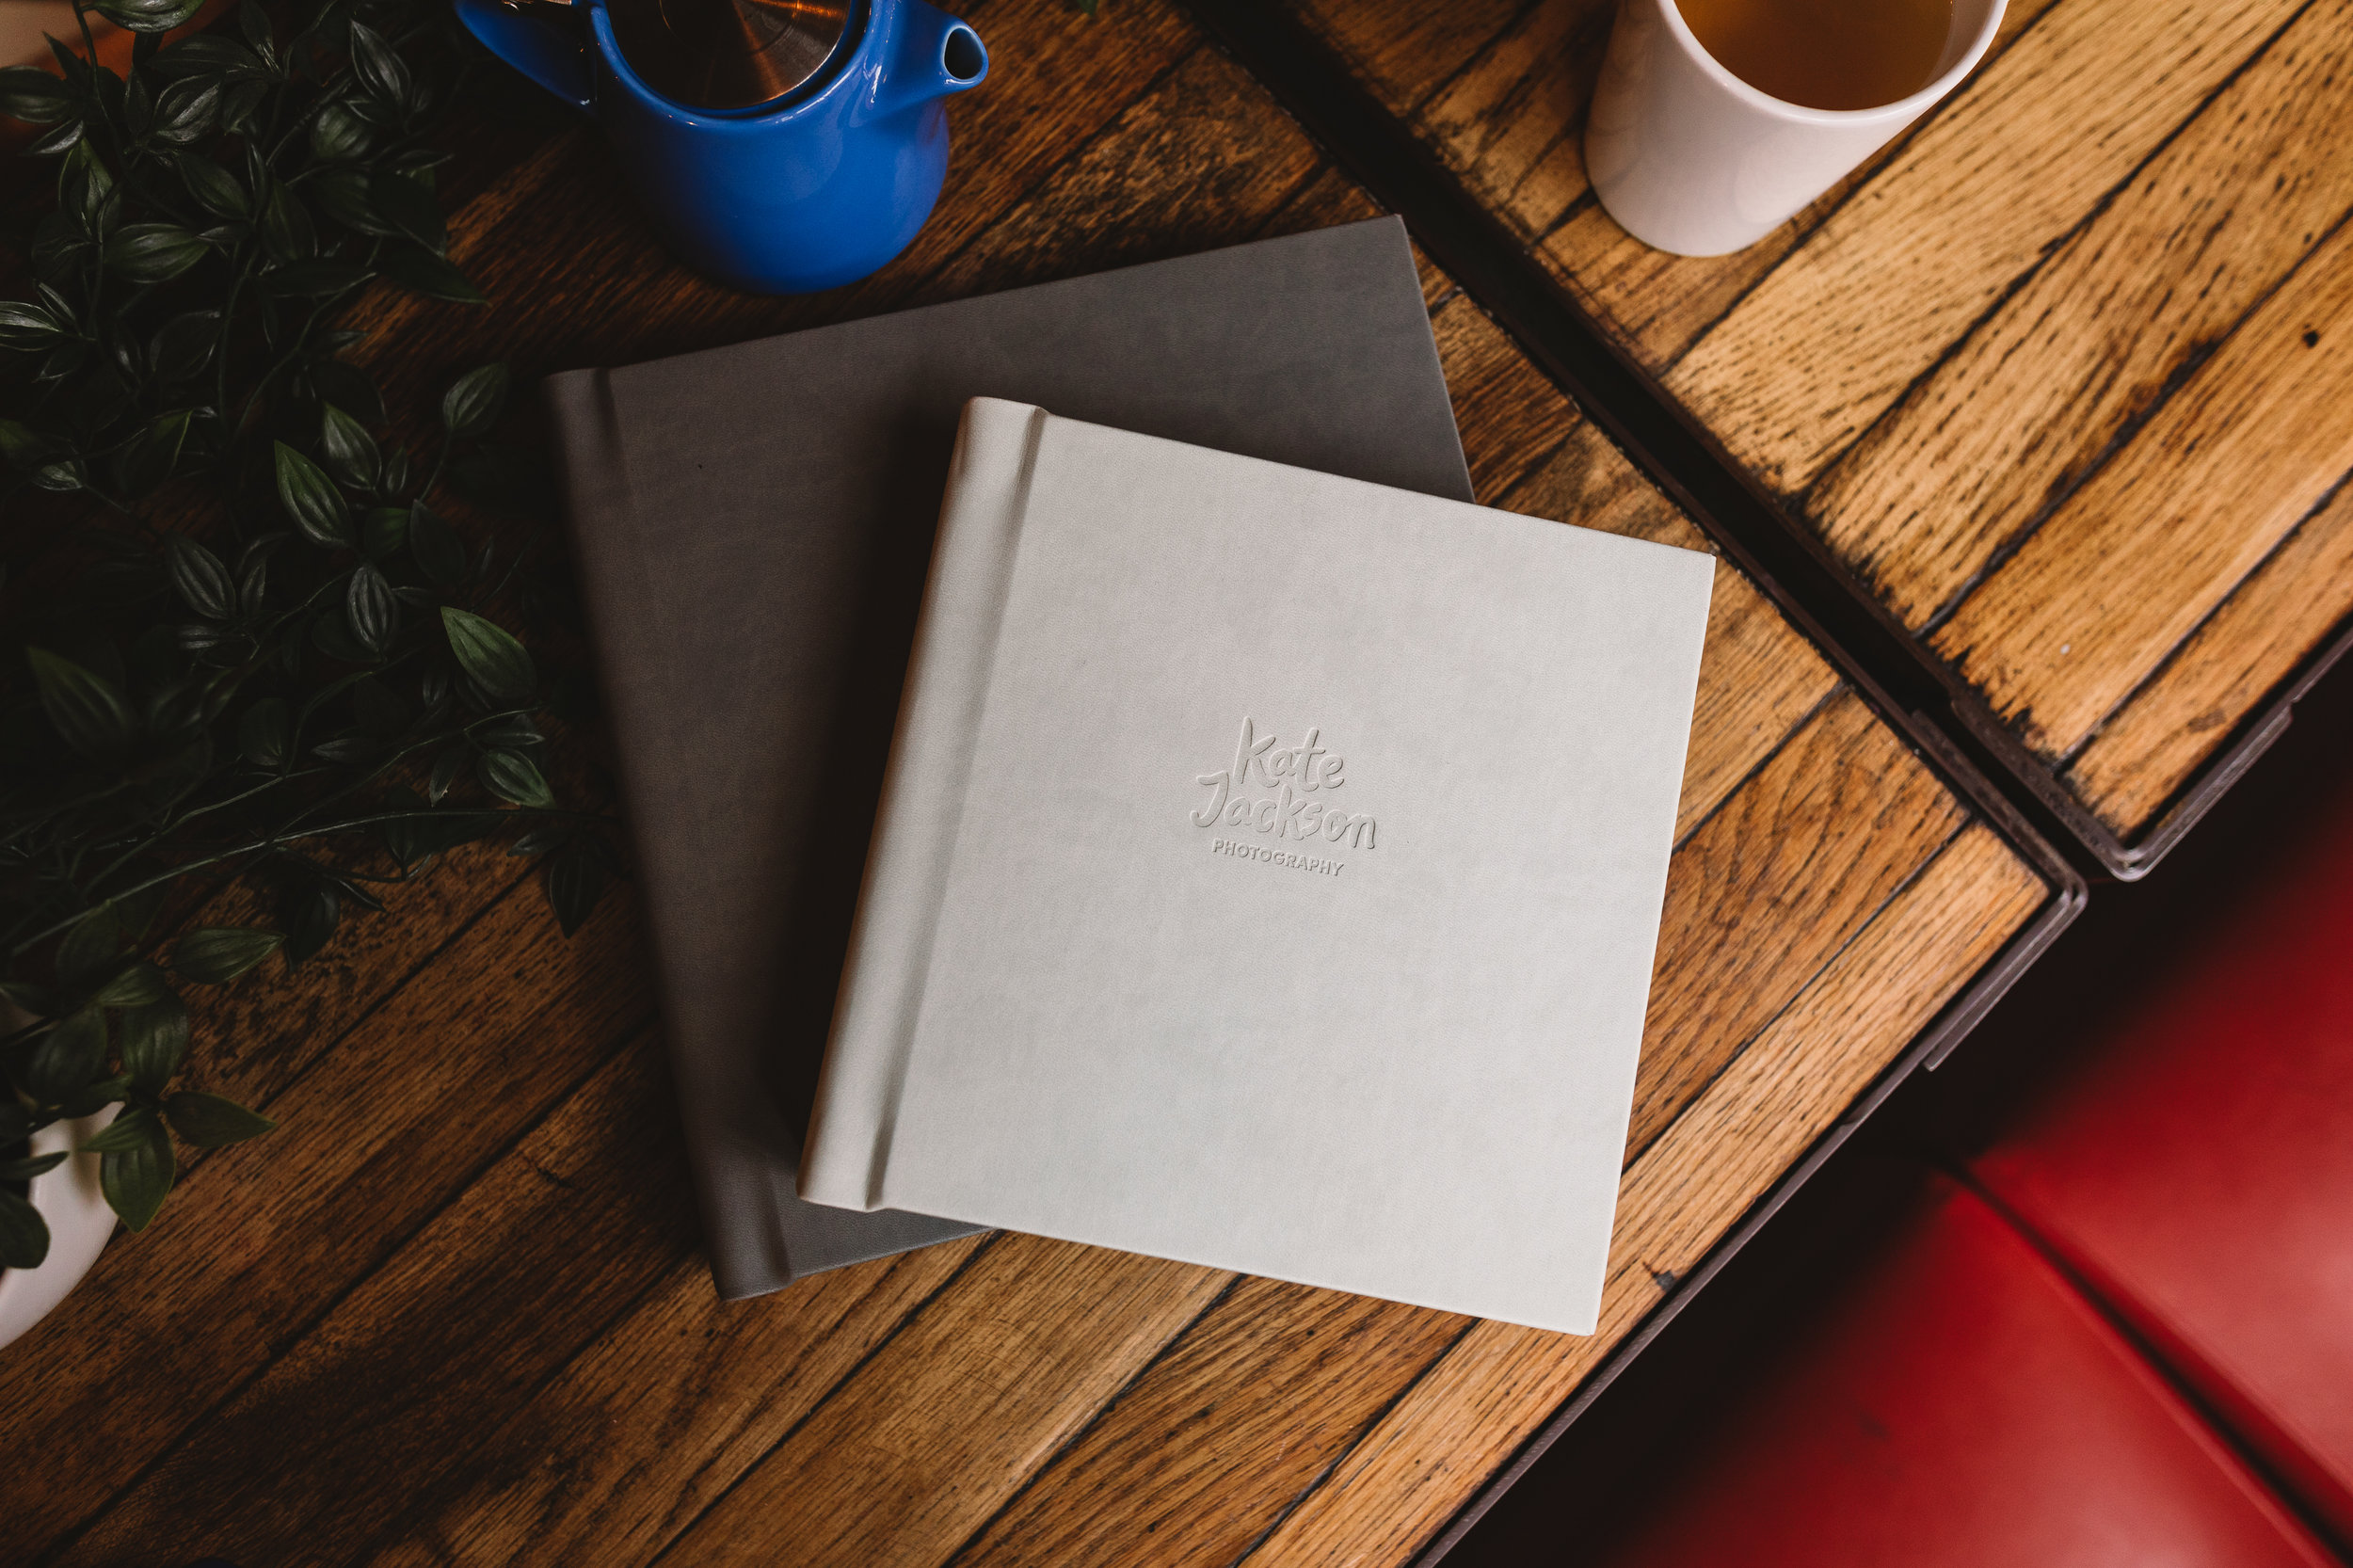 Photo of Kate Jackson Photography wedding albums on a wooden table with a cup of tea and quirky tea blue teapot.